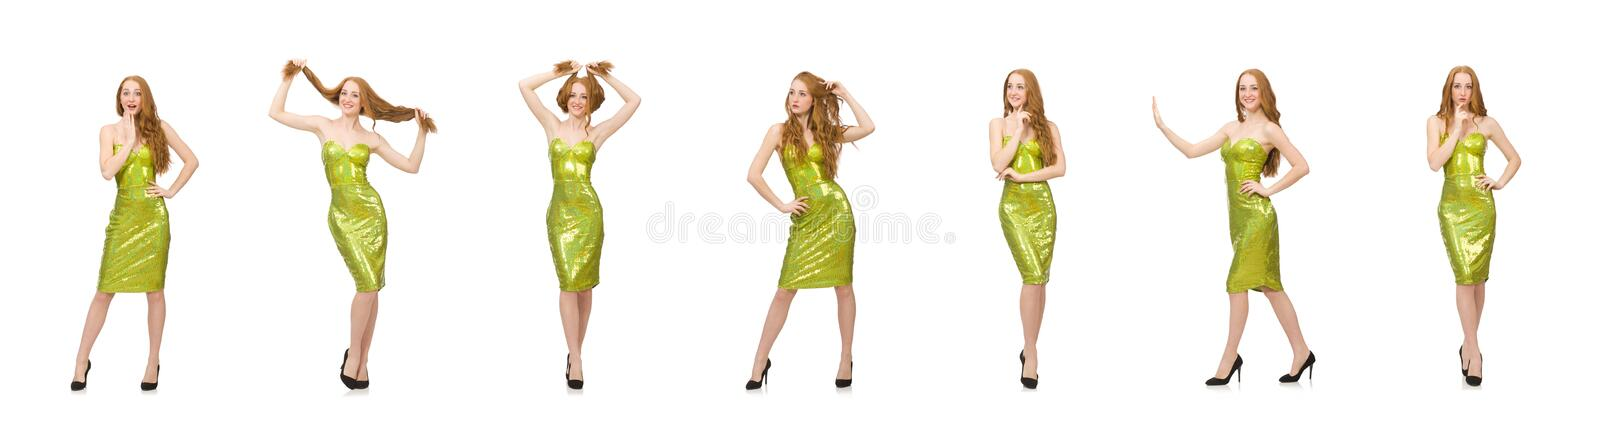 Red hair girl in sparkling green dress isolated on white royalty free stock images